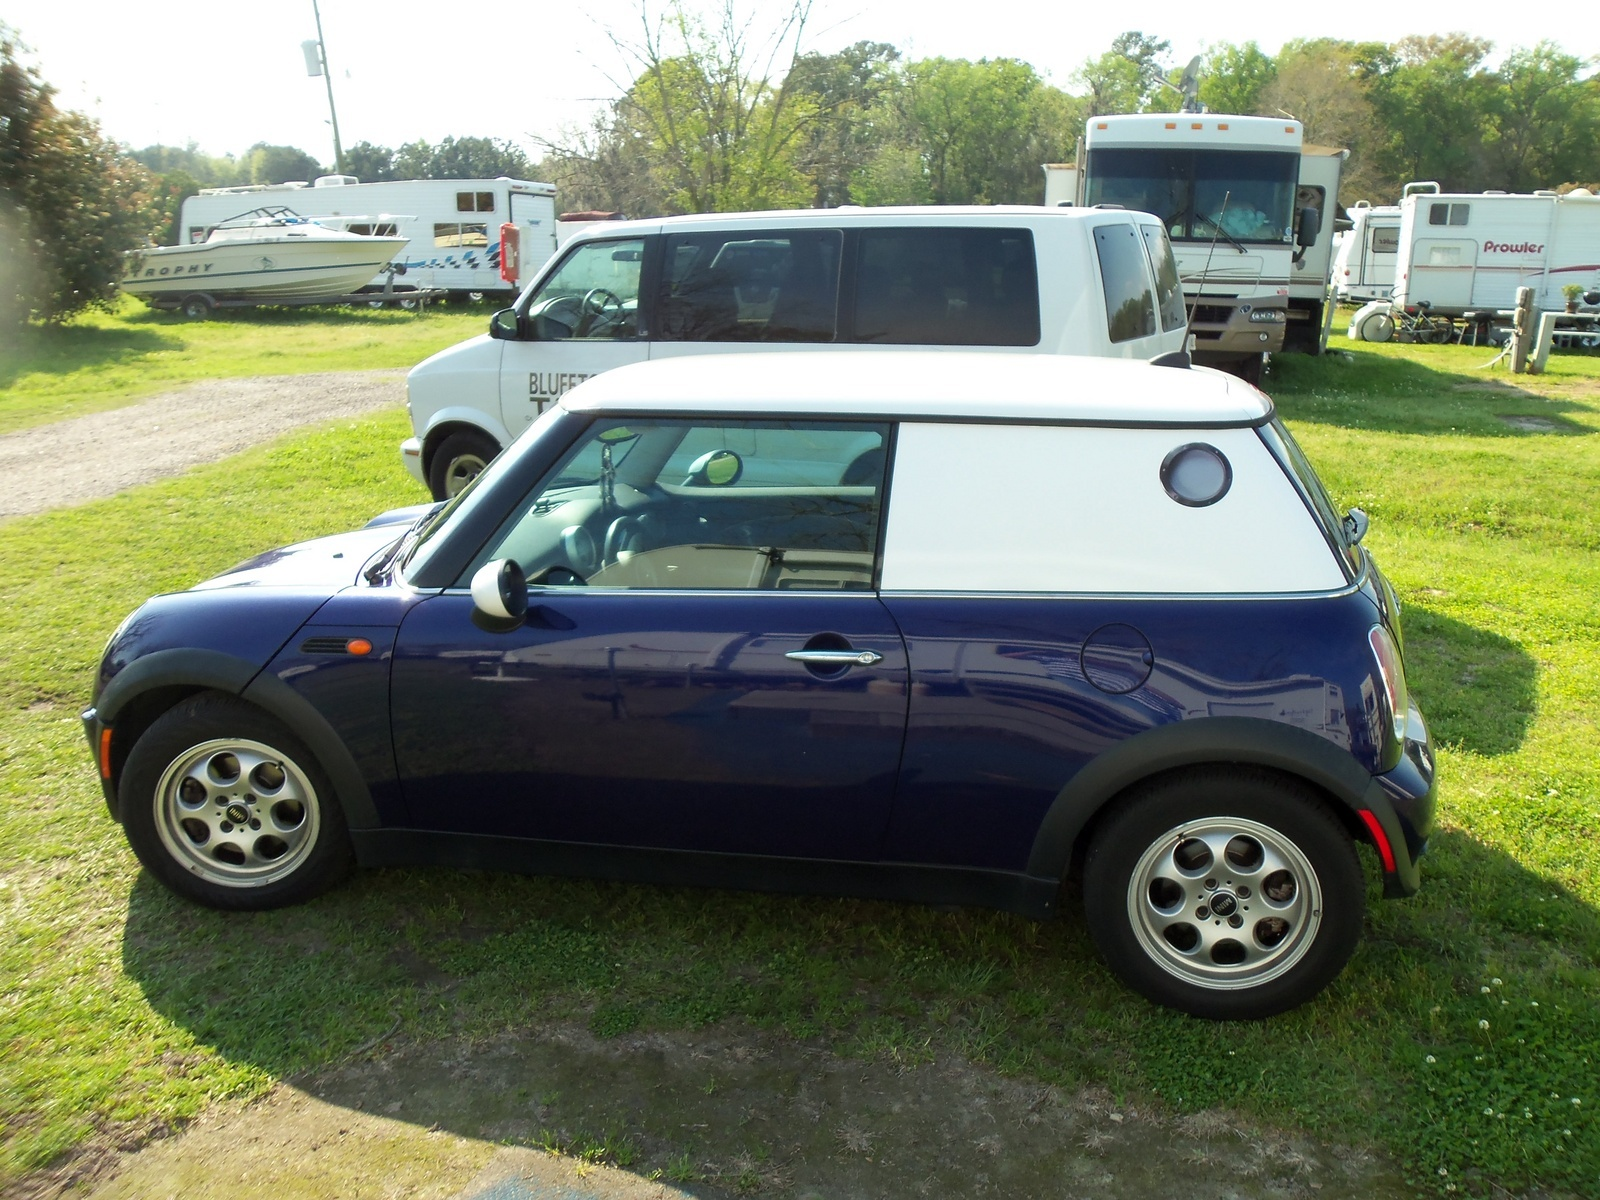 mini cooper questions mini cooper 2005 hatchback would like to lift it 1 to 2 inches is thi. Black Bedroom Furniture Sets. Home Design Ideas